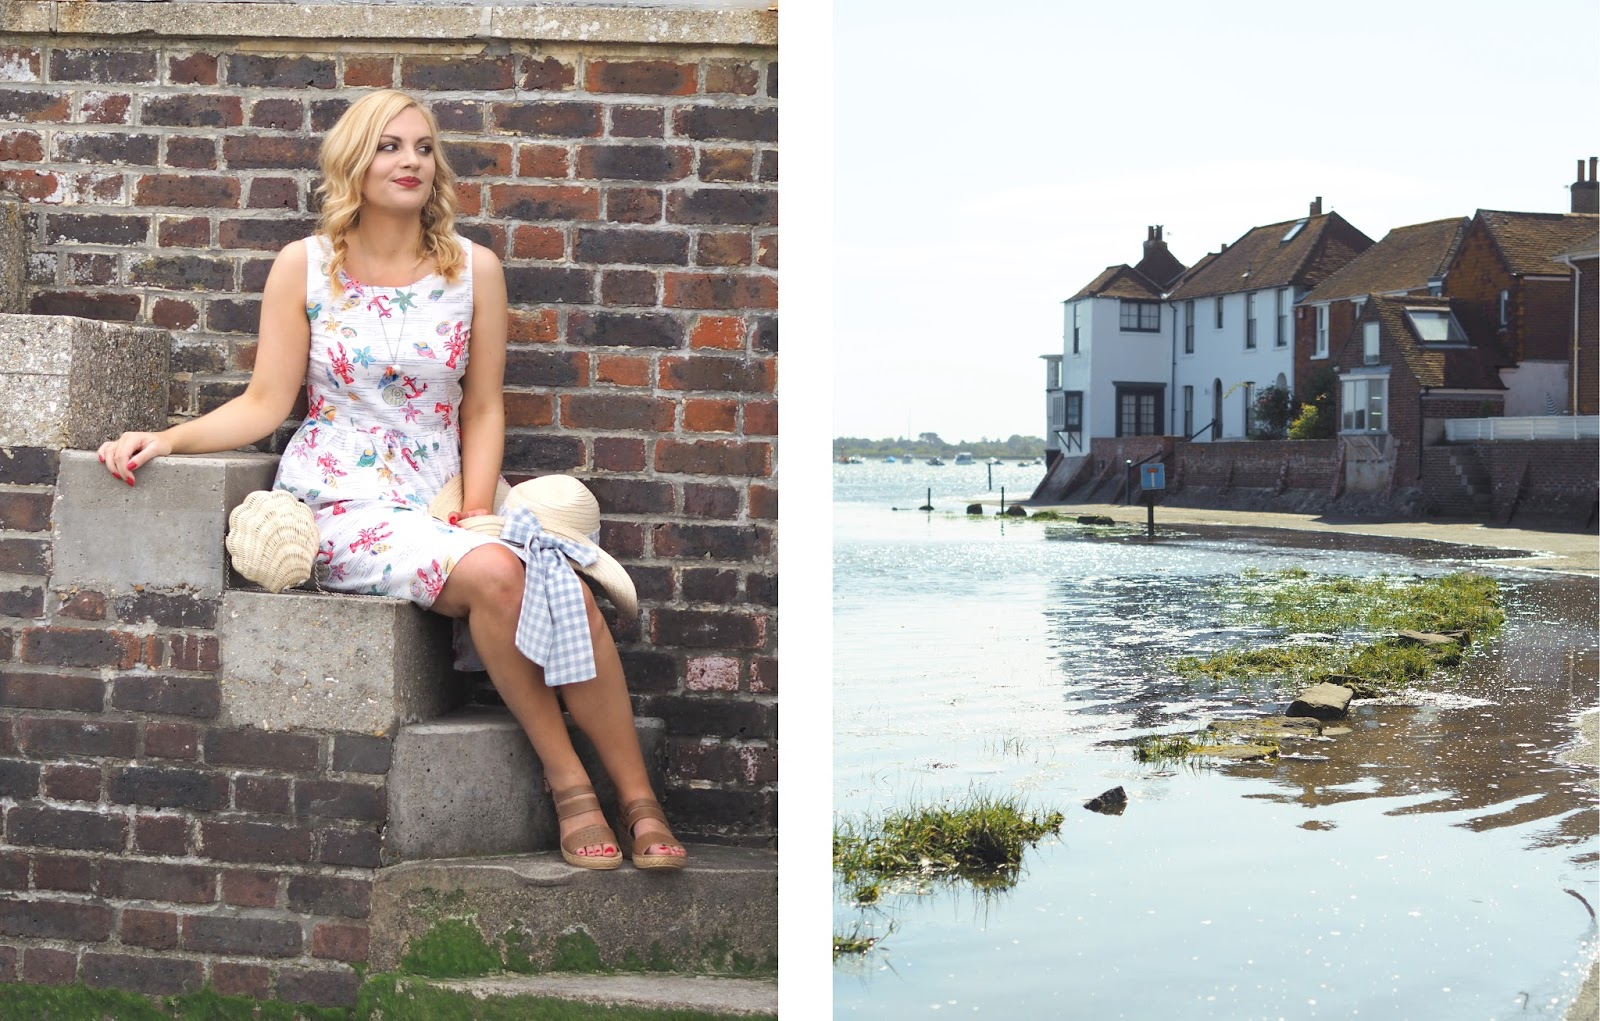 Seaside Prints Outfit, Summer Lookbook, Katie Kirk Loves, UK Blogger, Fashion Blogger, Style Blogger, Outfit of the Day, Aspire Style, Cath Kidston, Lobster & Shells, Cath Kidston Lobster & Shell Print Dress, Moshulu Shoes, Summer Style, Bosham Harbour, West Sussex